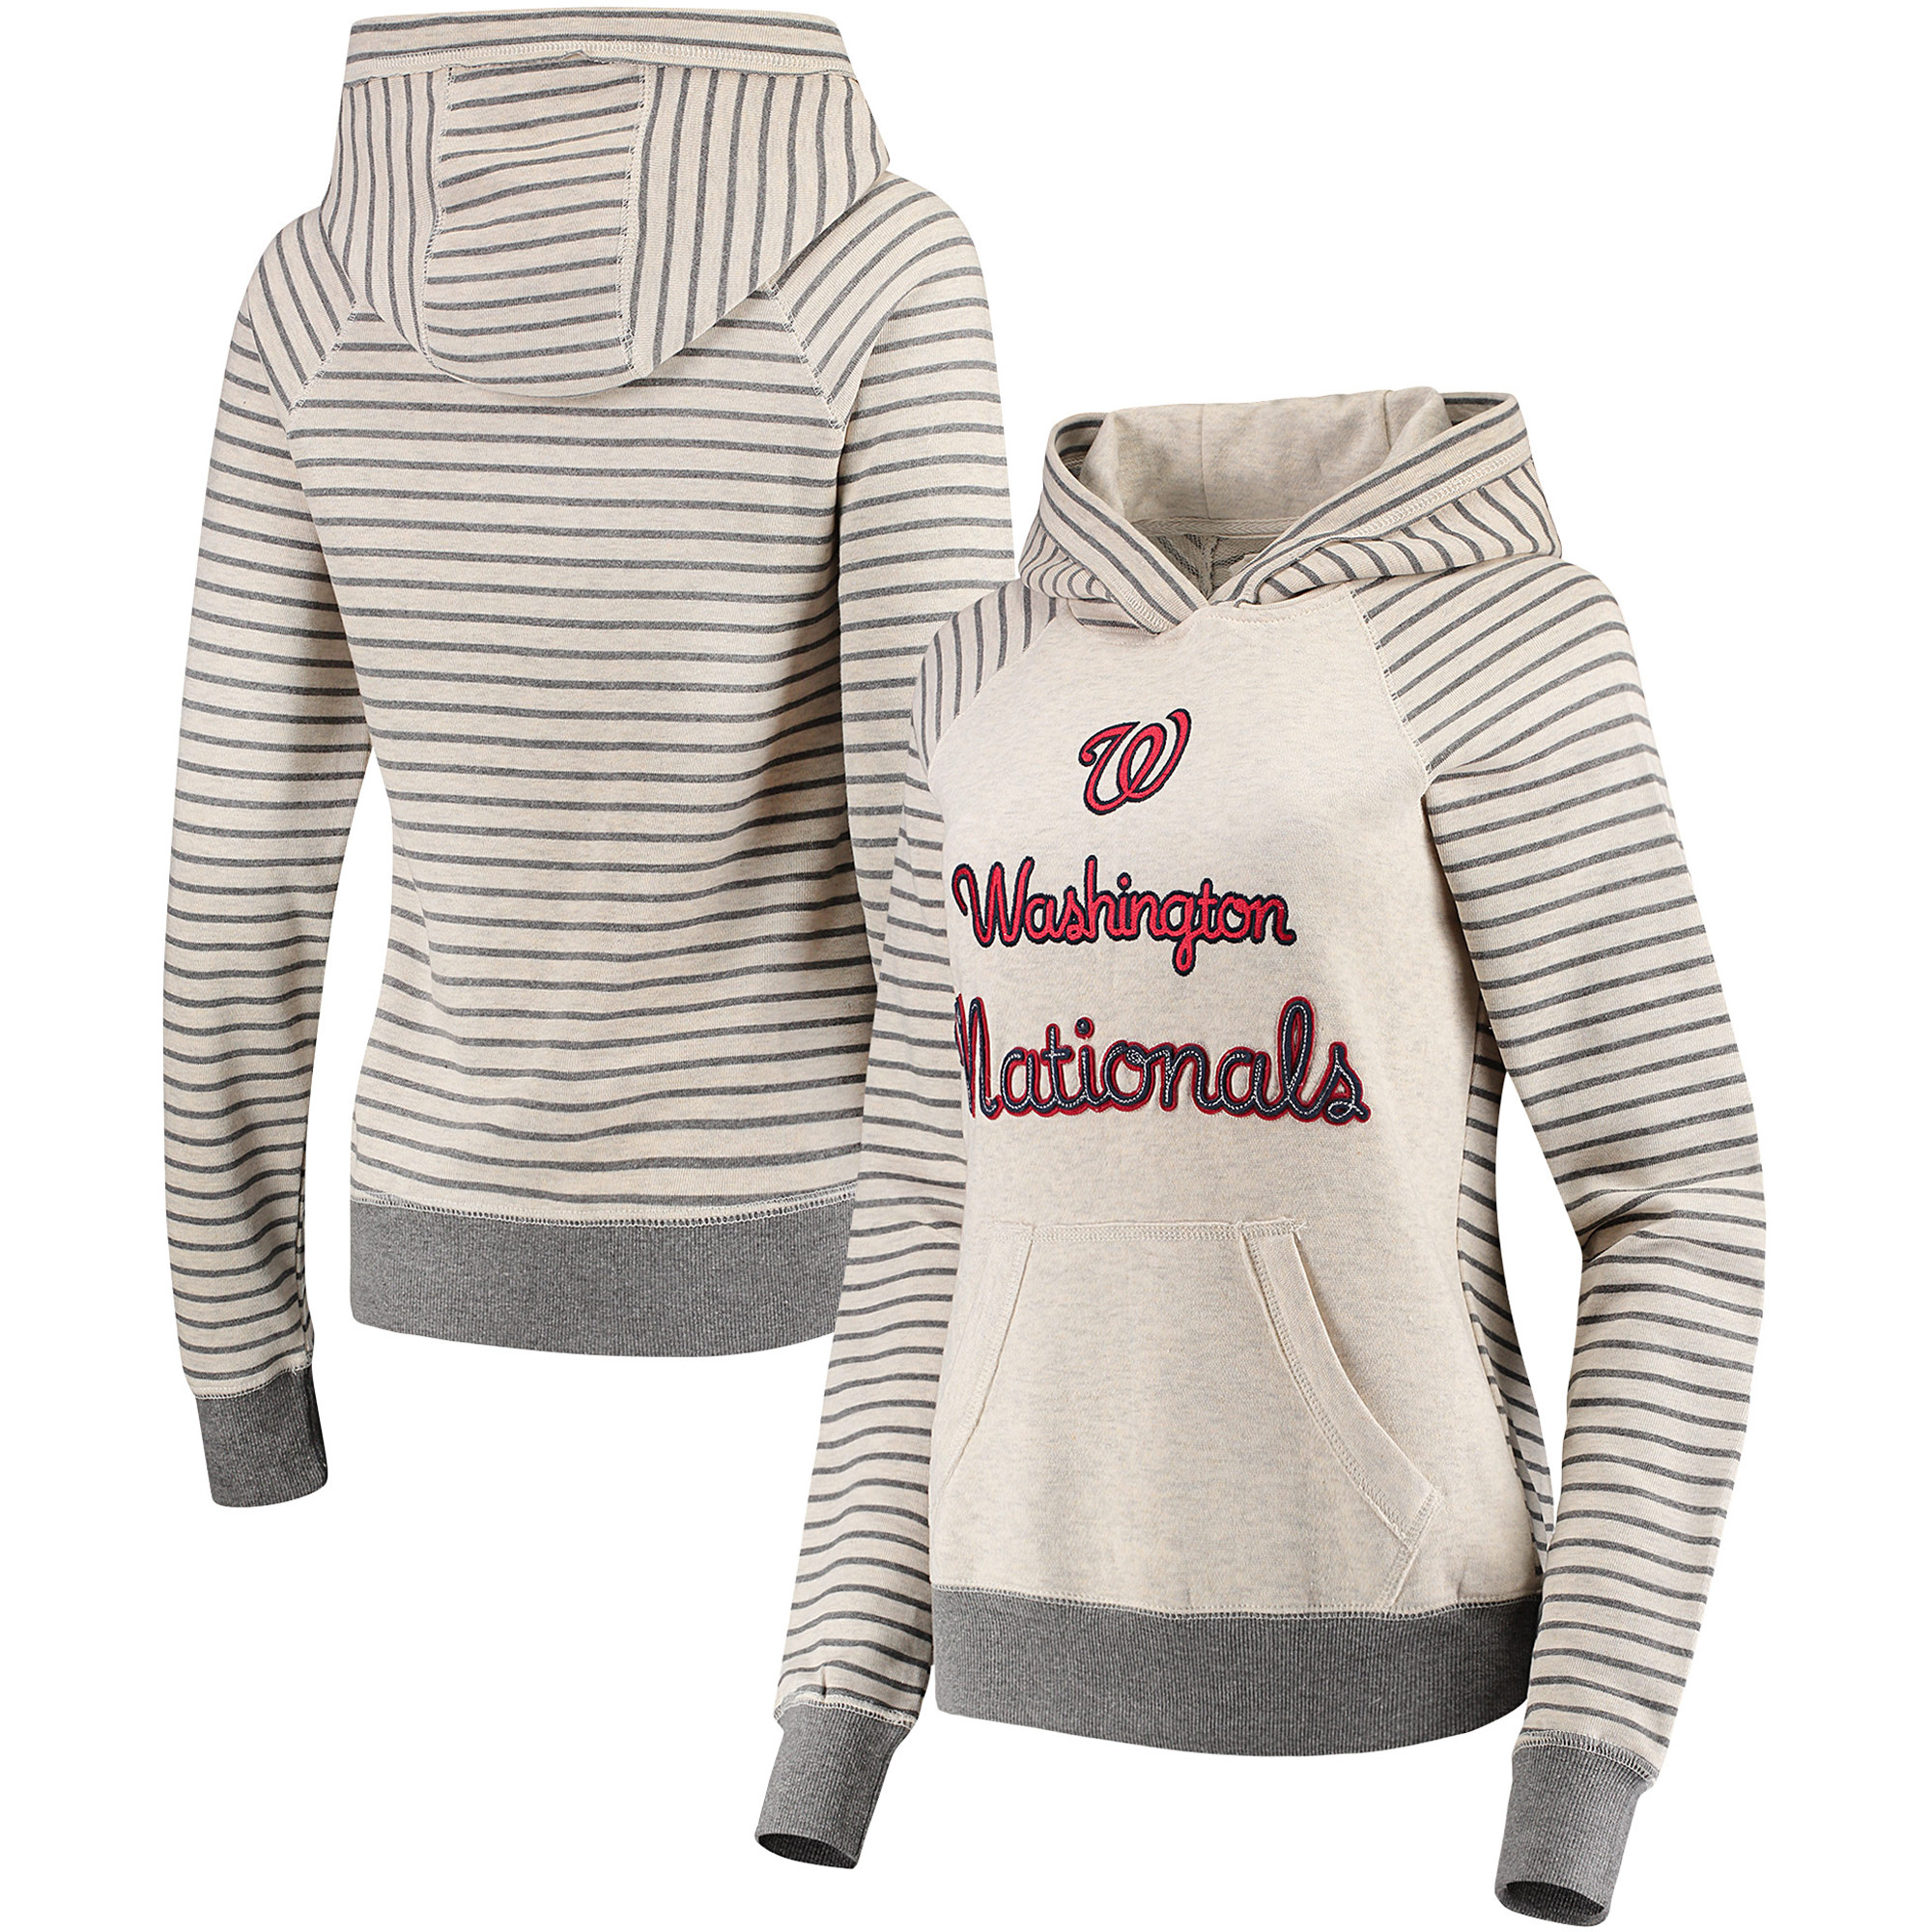 Washington Nationals Soft as a Grape Women's Bio Washed Stripe Sleeve Pullover Hoodie - Cream/Gray